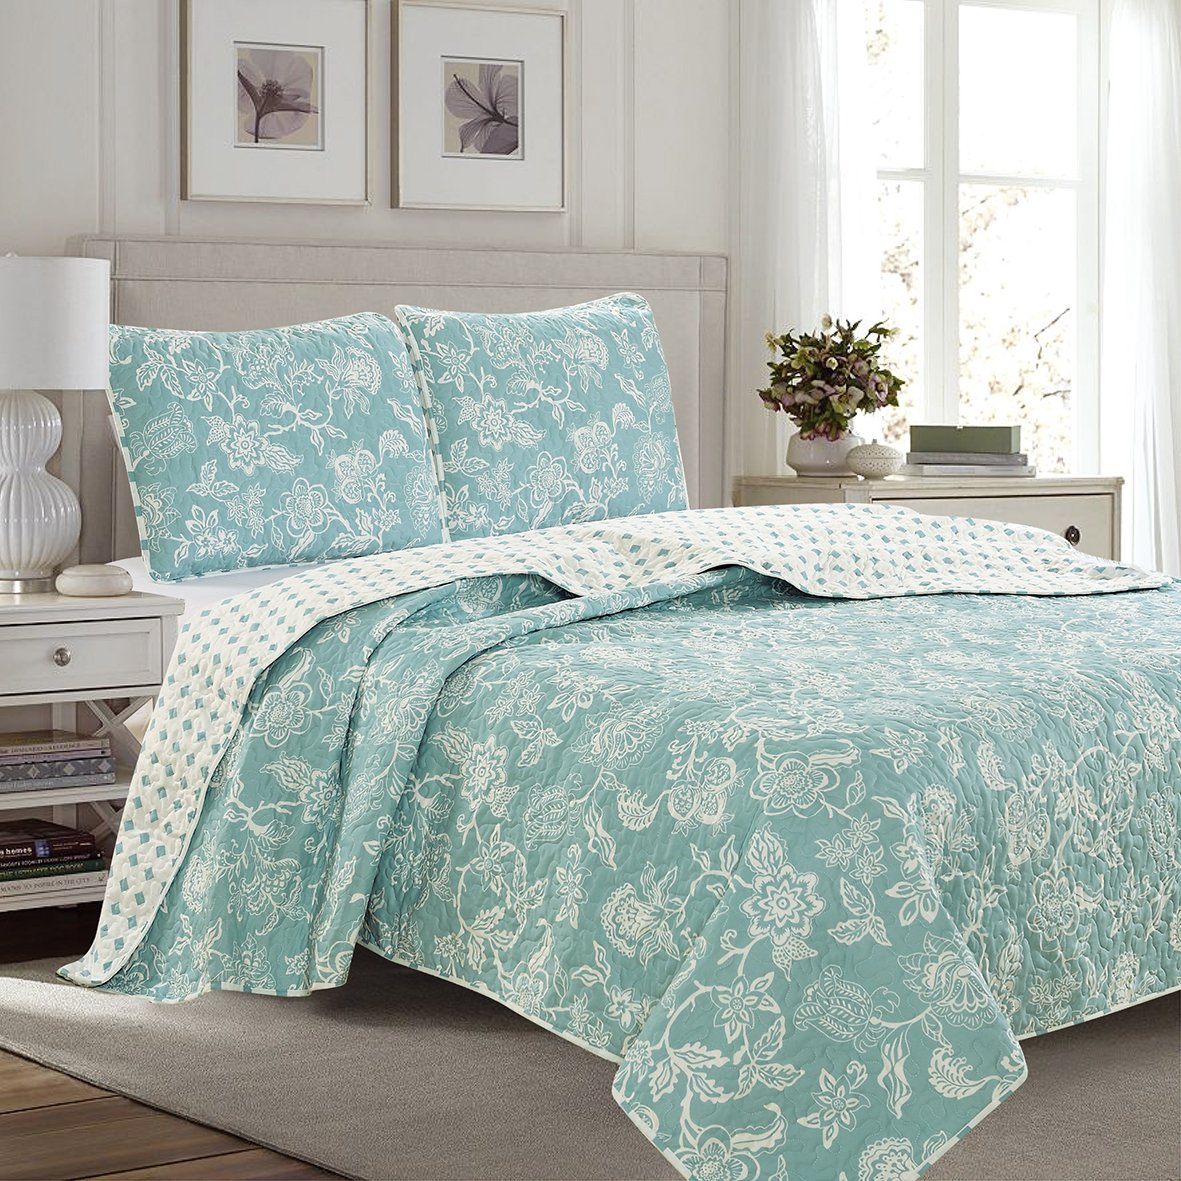 Great Bay Home 3-Piece Reversible Quilt Set with Shams. All-Season Bedspread with Floral Print Pattern in Contemporary Colors. Emma Collection Brand. (King, Blue)